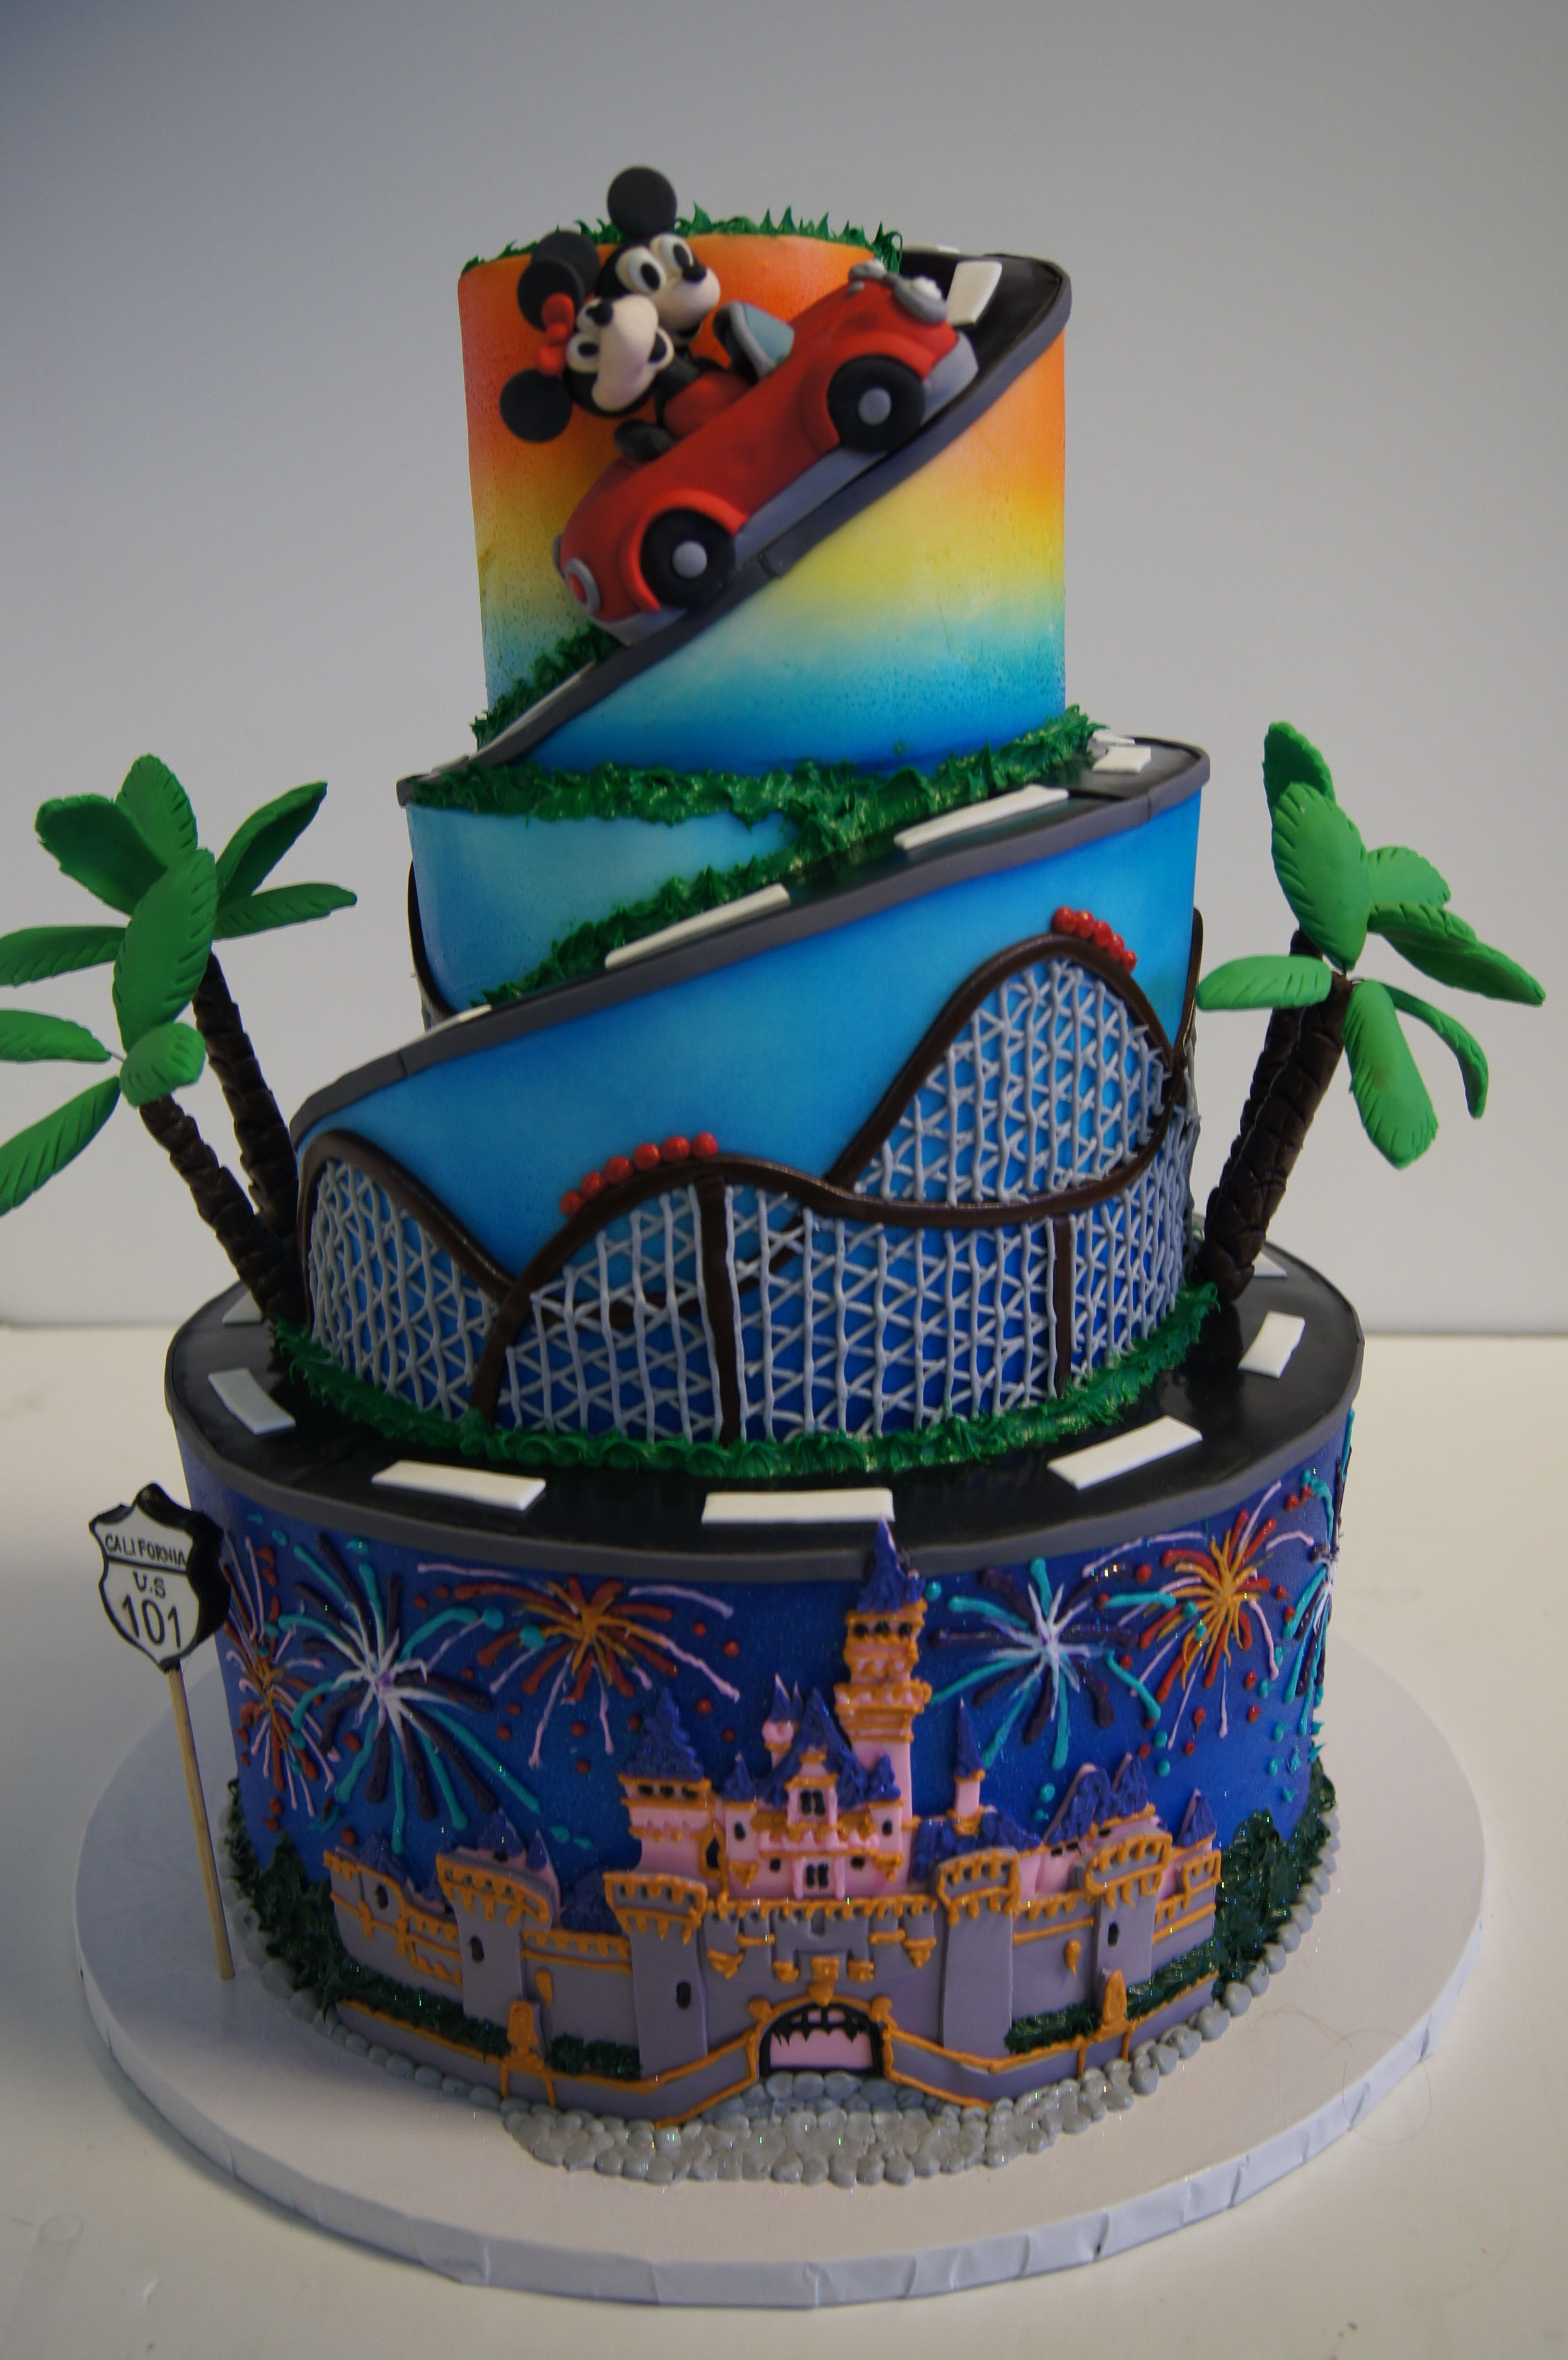 Disneyland Cake Adventures By Disney Cakes For Boys Boy Birthday